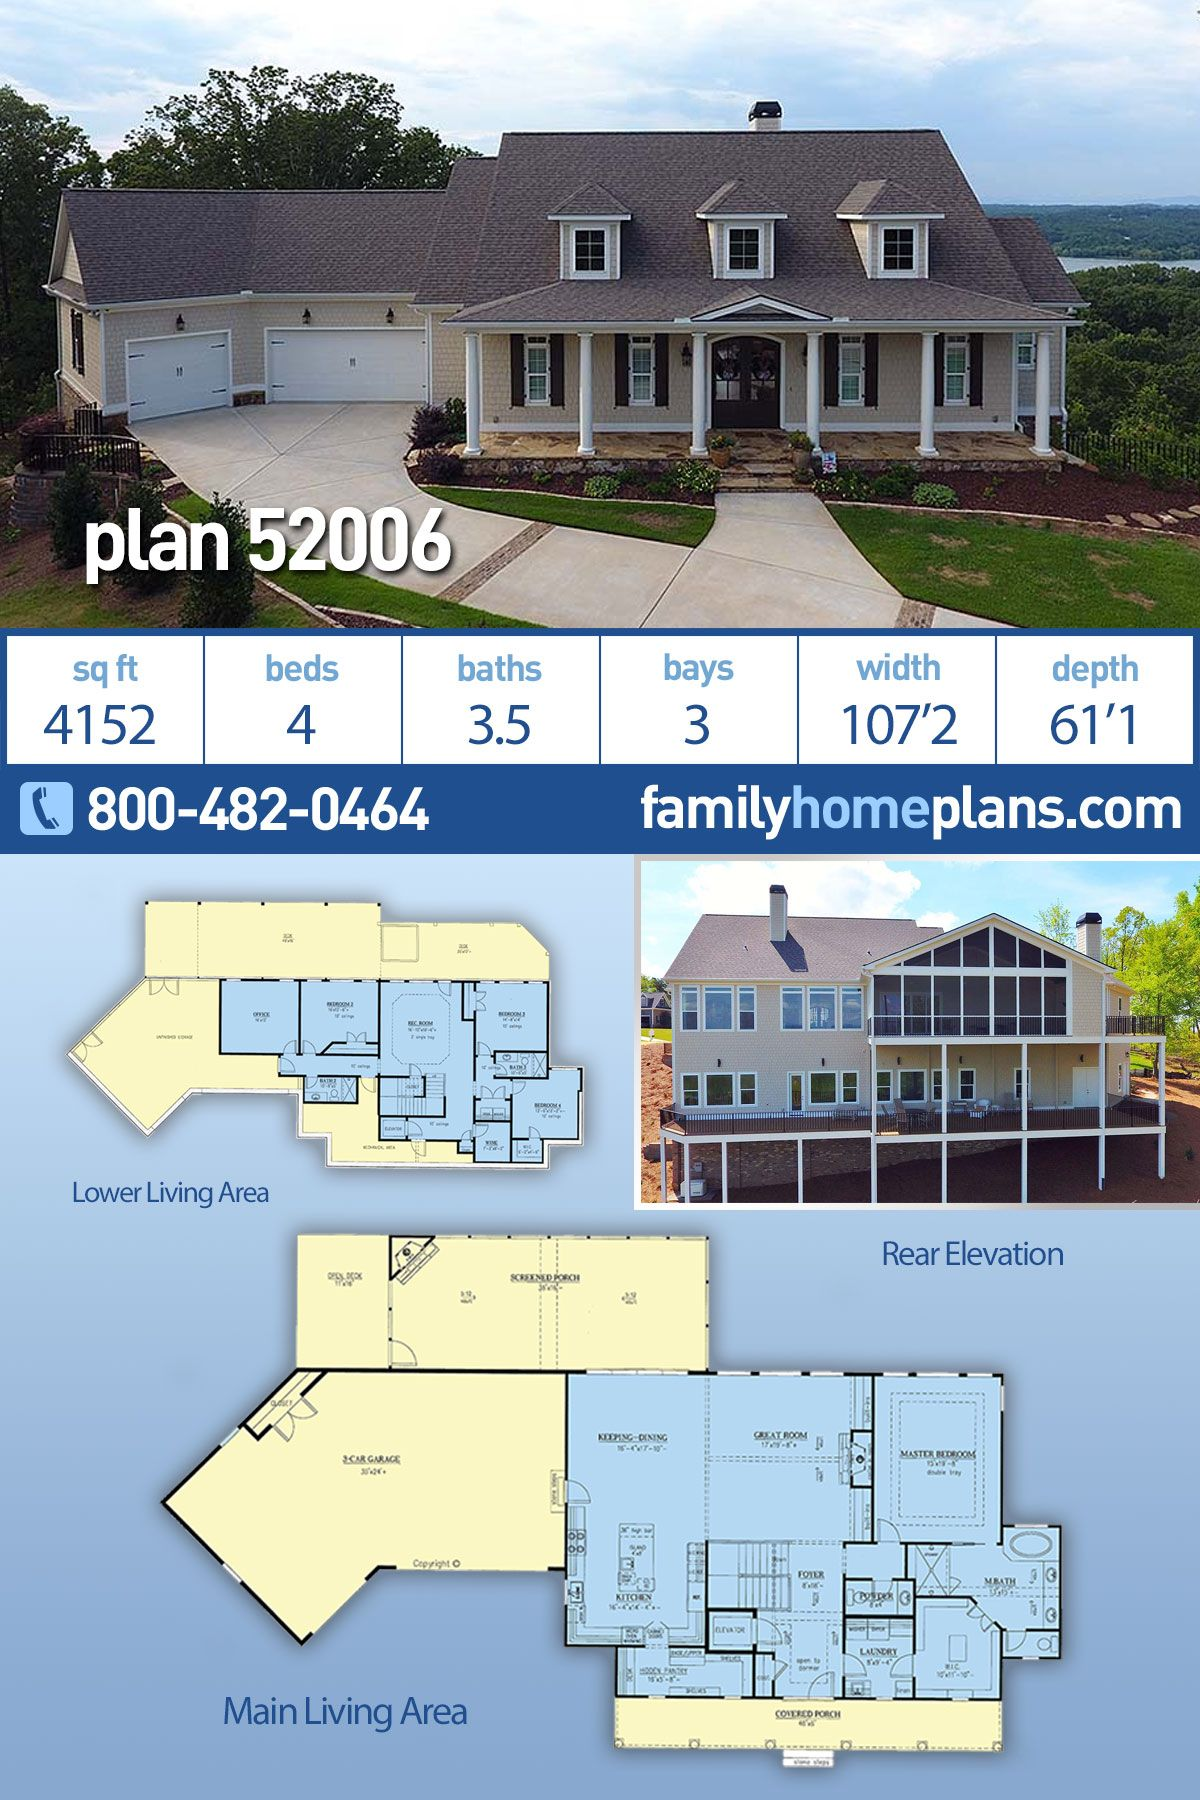 Traditional Style House Plan 50026 With 3 Bed 4 Bath 2 Car Garage Farmhouse Style House Plans Basement House Plans House Plans Farmhouse